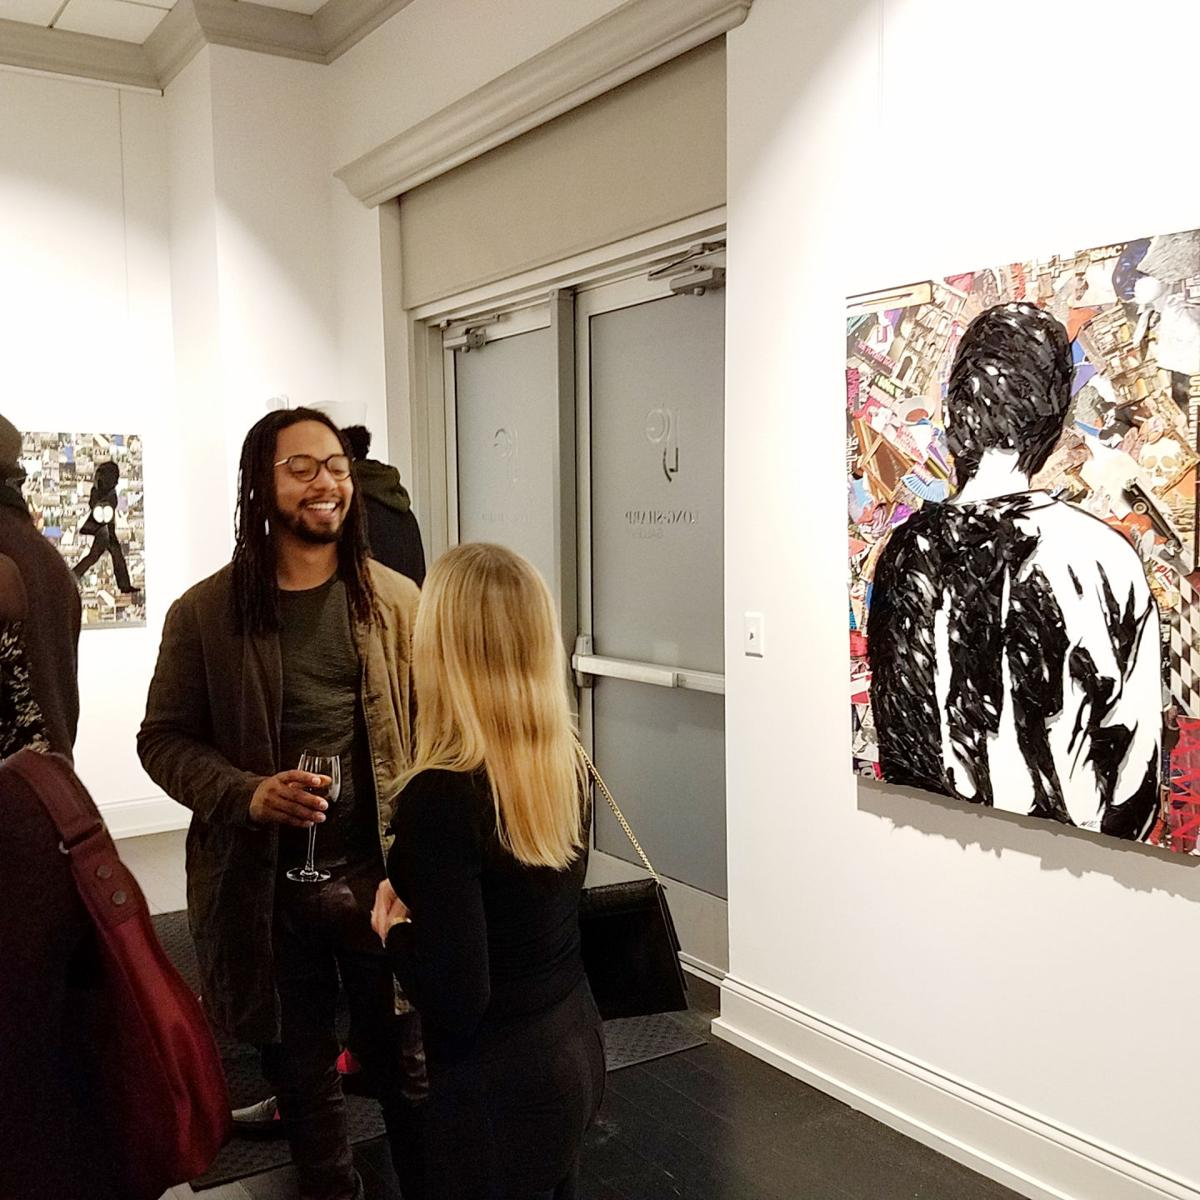 Walter Lobyn Hamilton at Long-Sharp Gallery on March 2